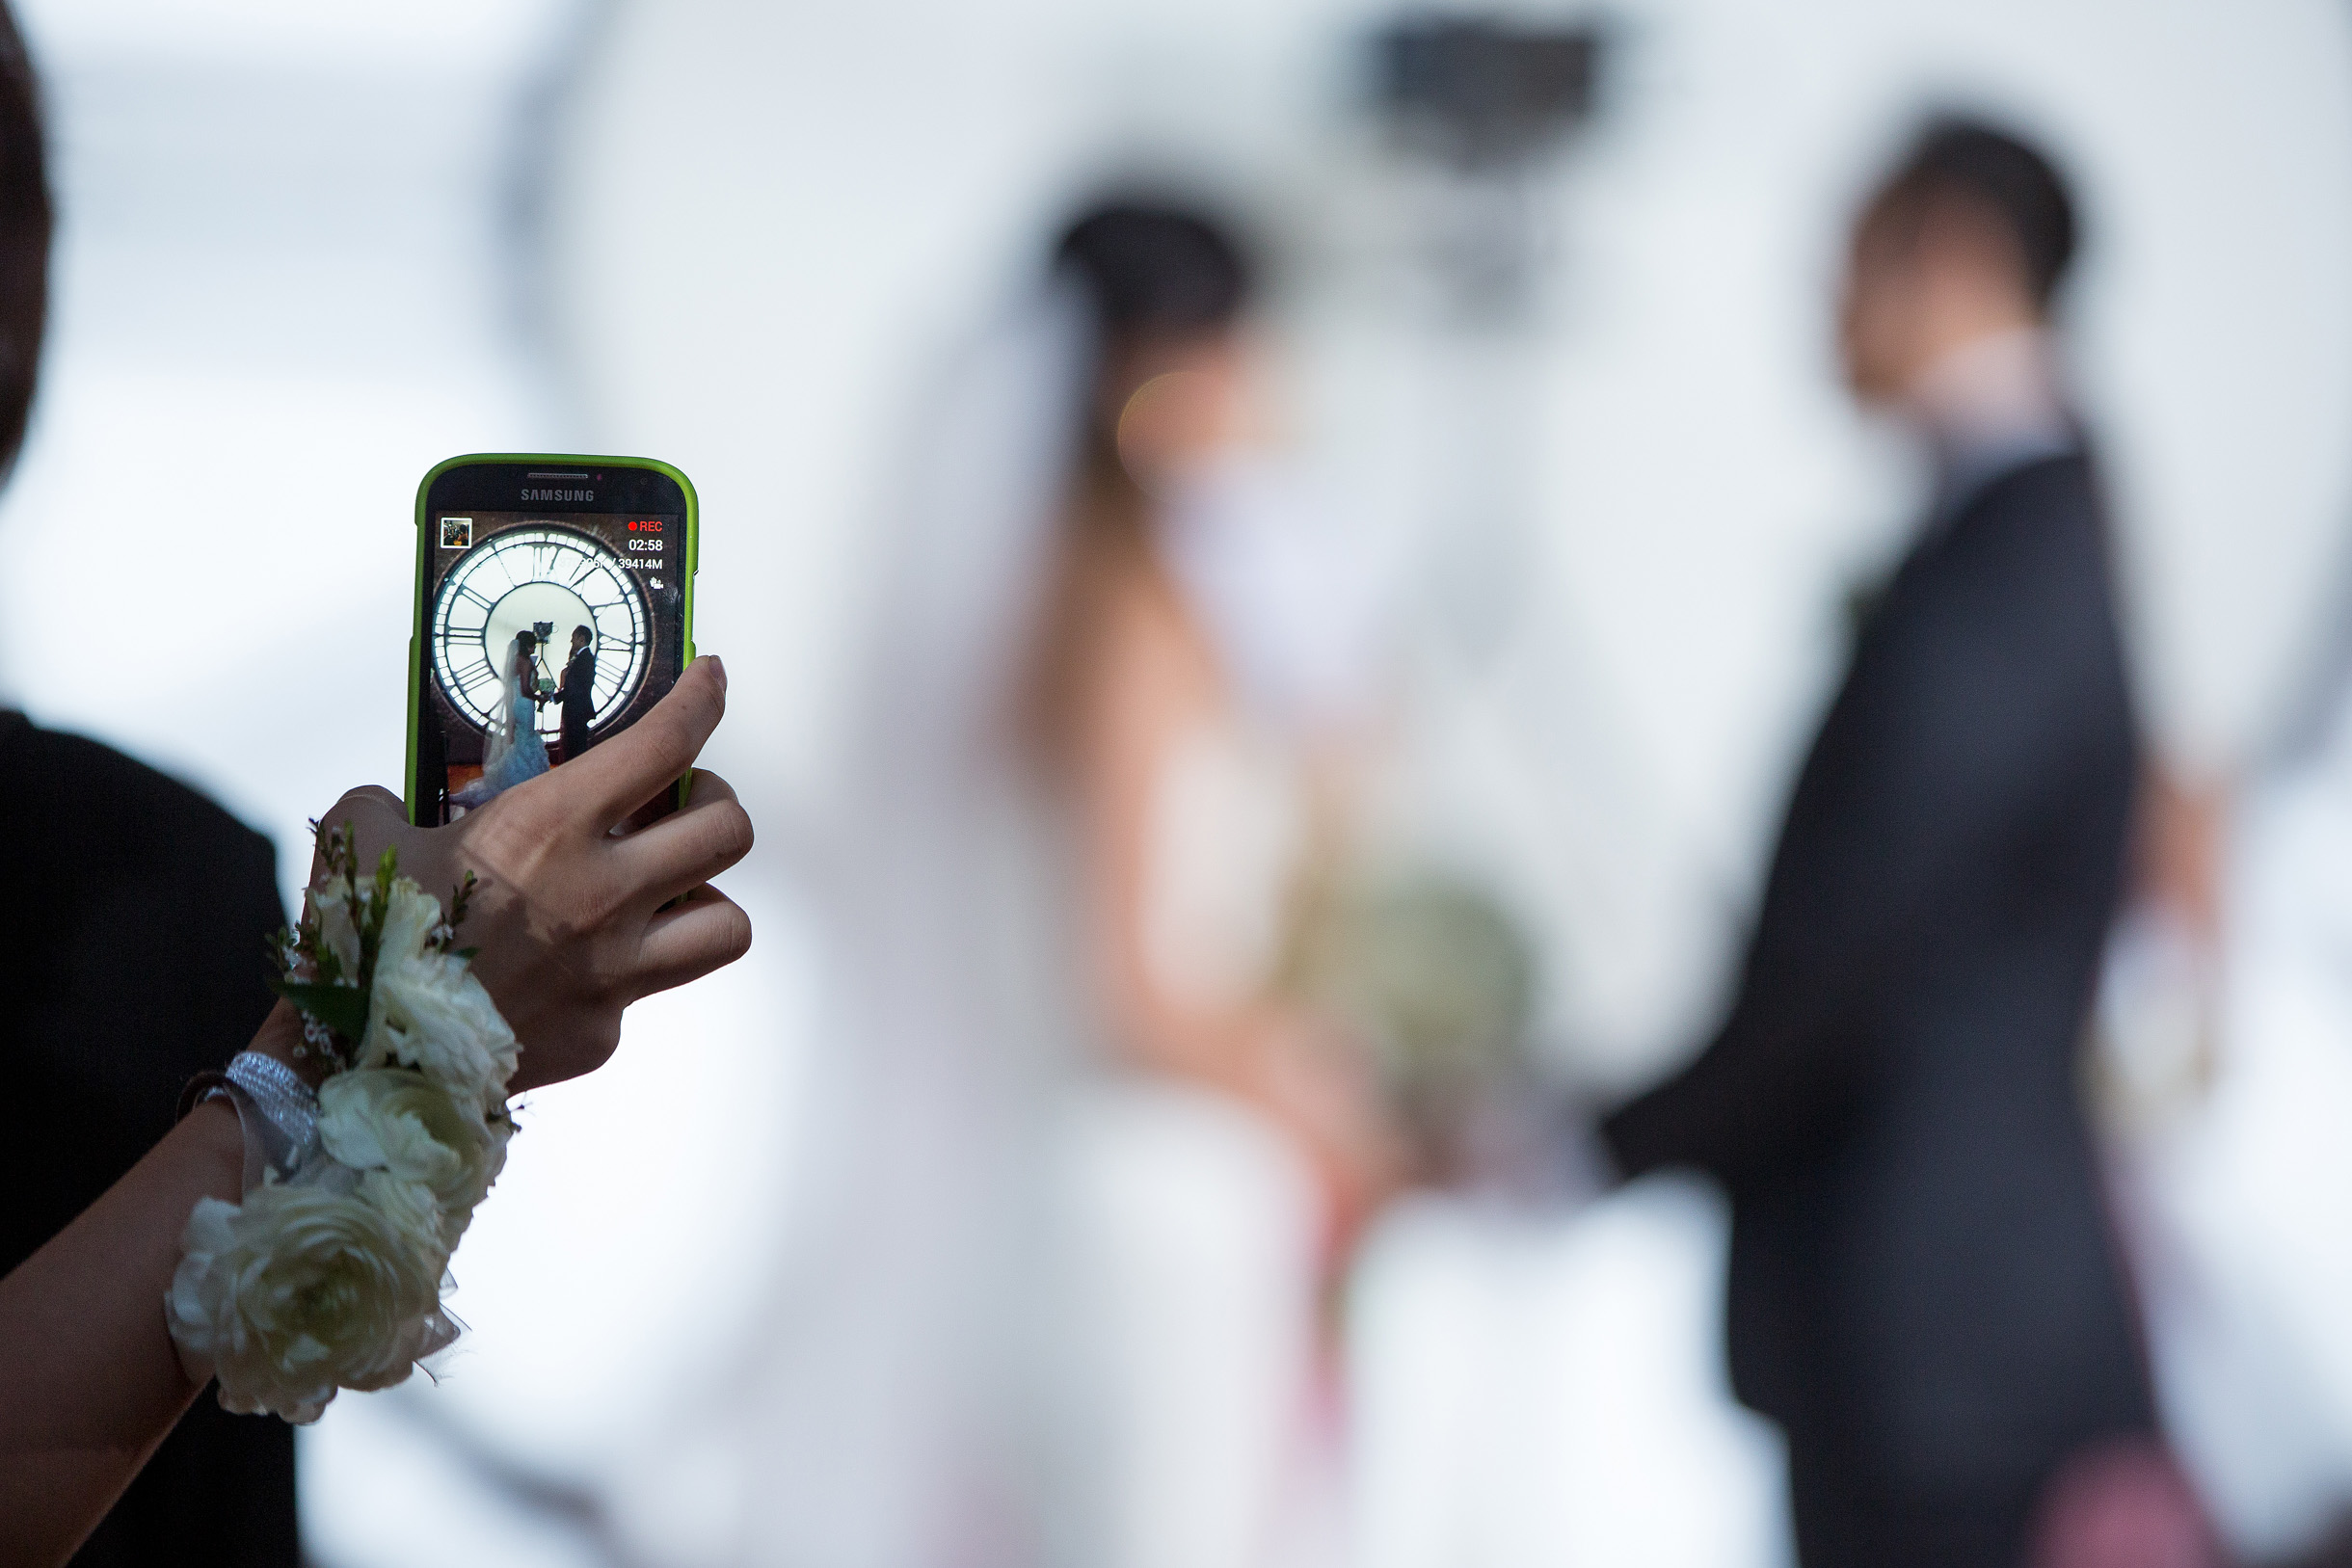 Wedding guest blocking bride and groom with their cellphone during ceremony